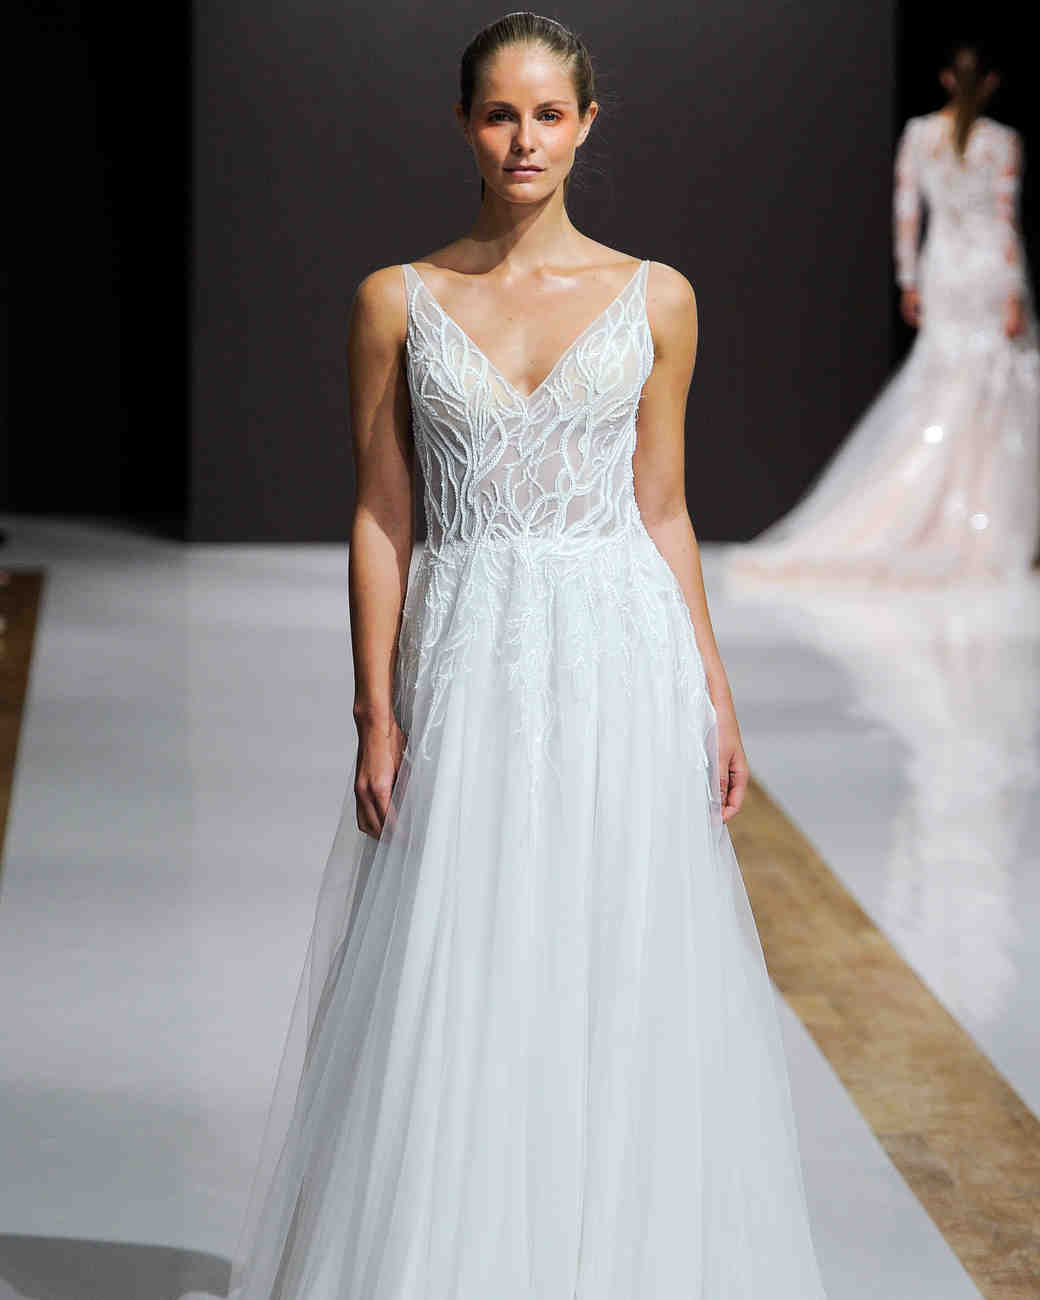 mark zunino wedding dress fall 2018 v neck a-line sheer